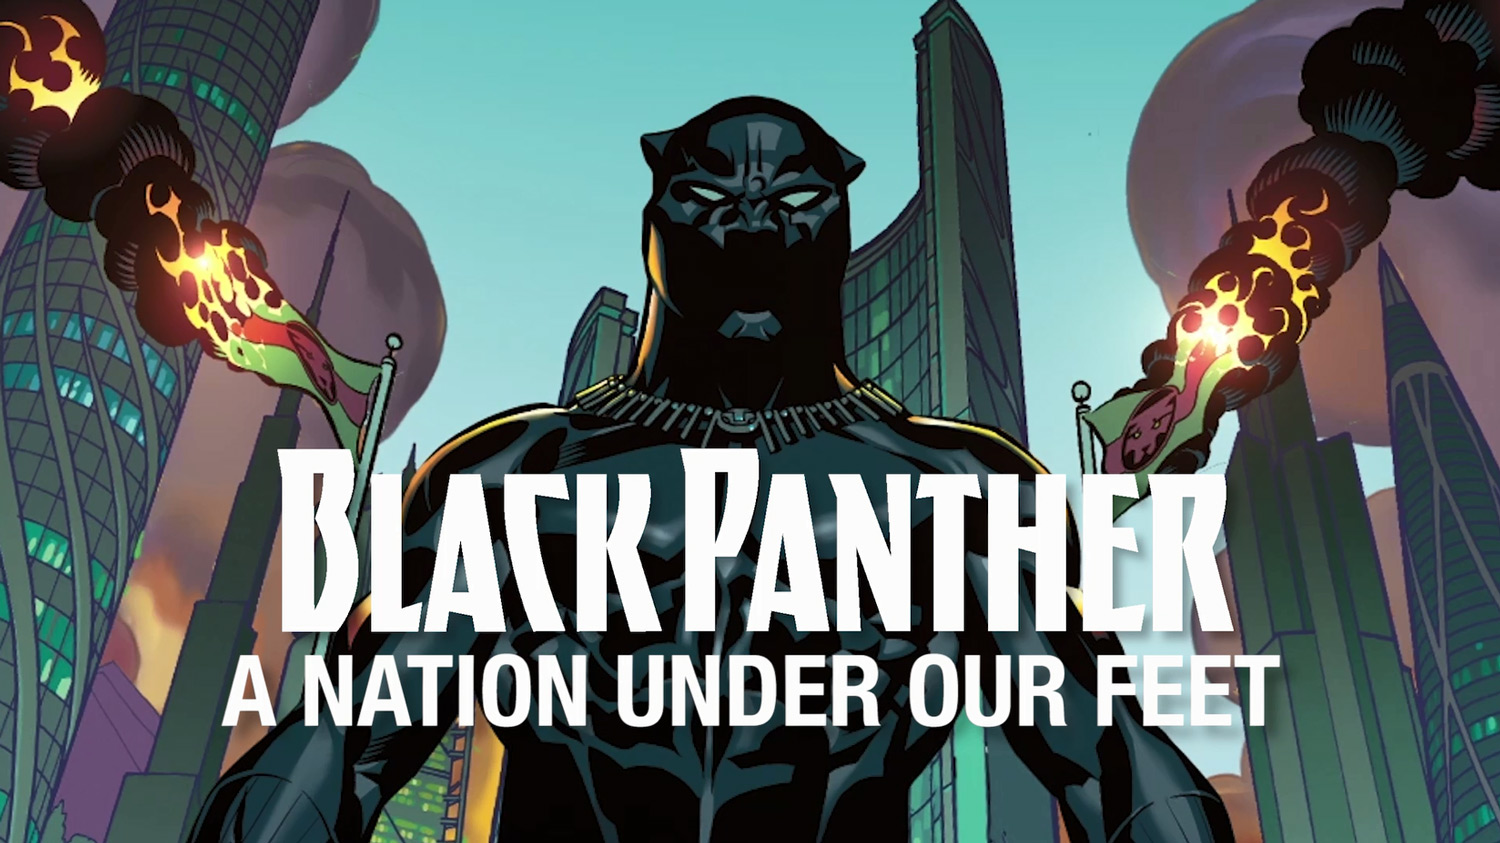 Black-Panther_A-Nation-Under-Our-Feet_Part-1_1.jpg